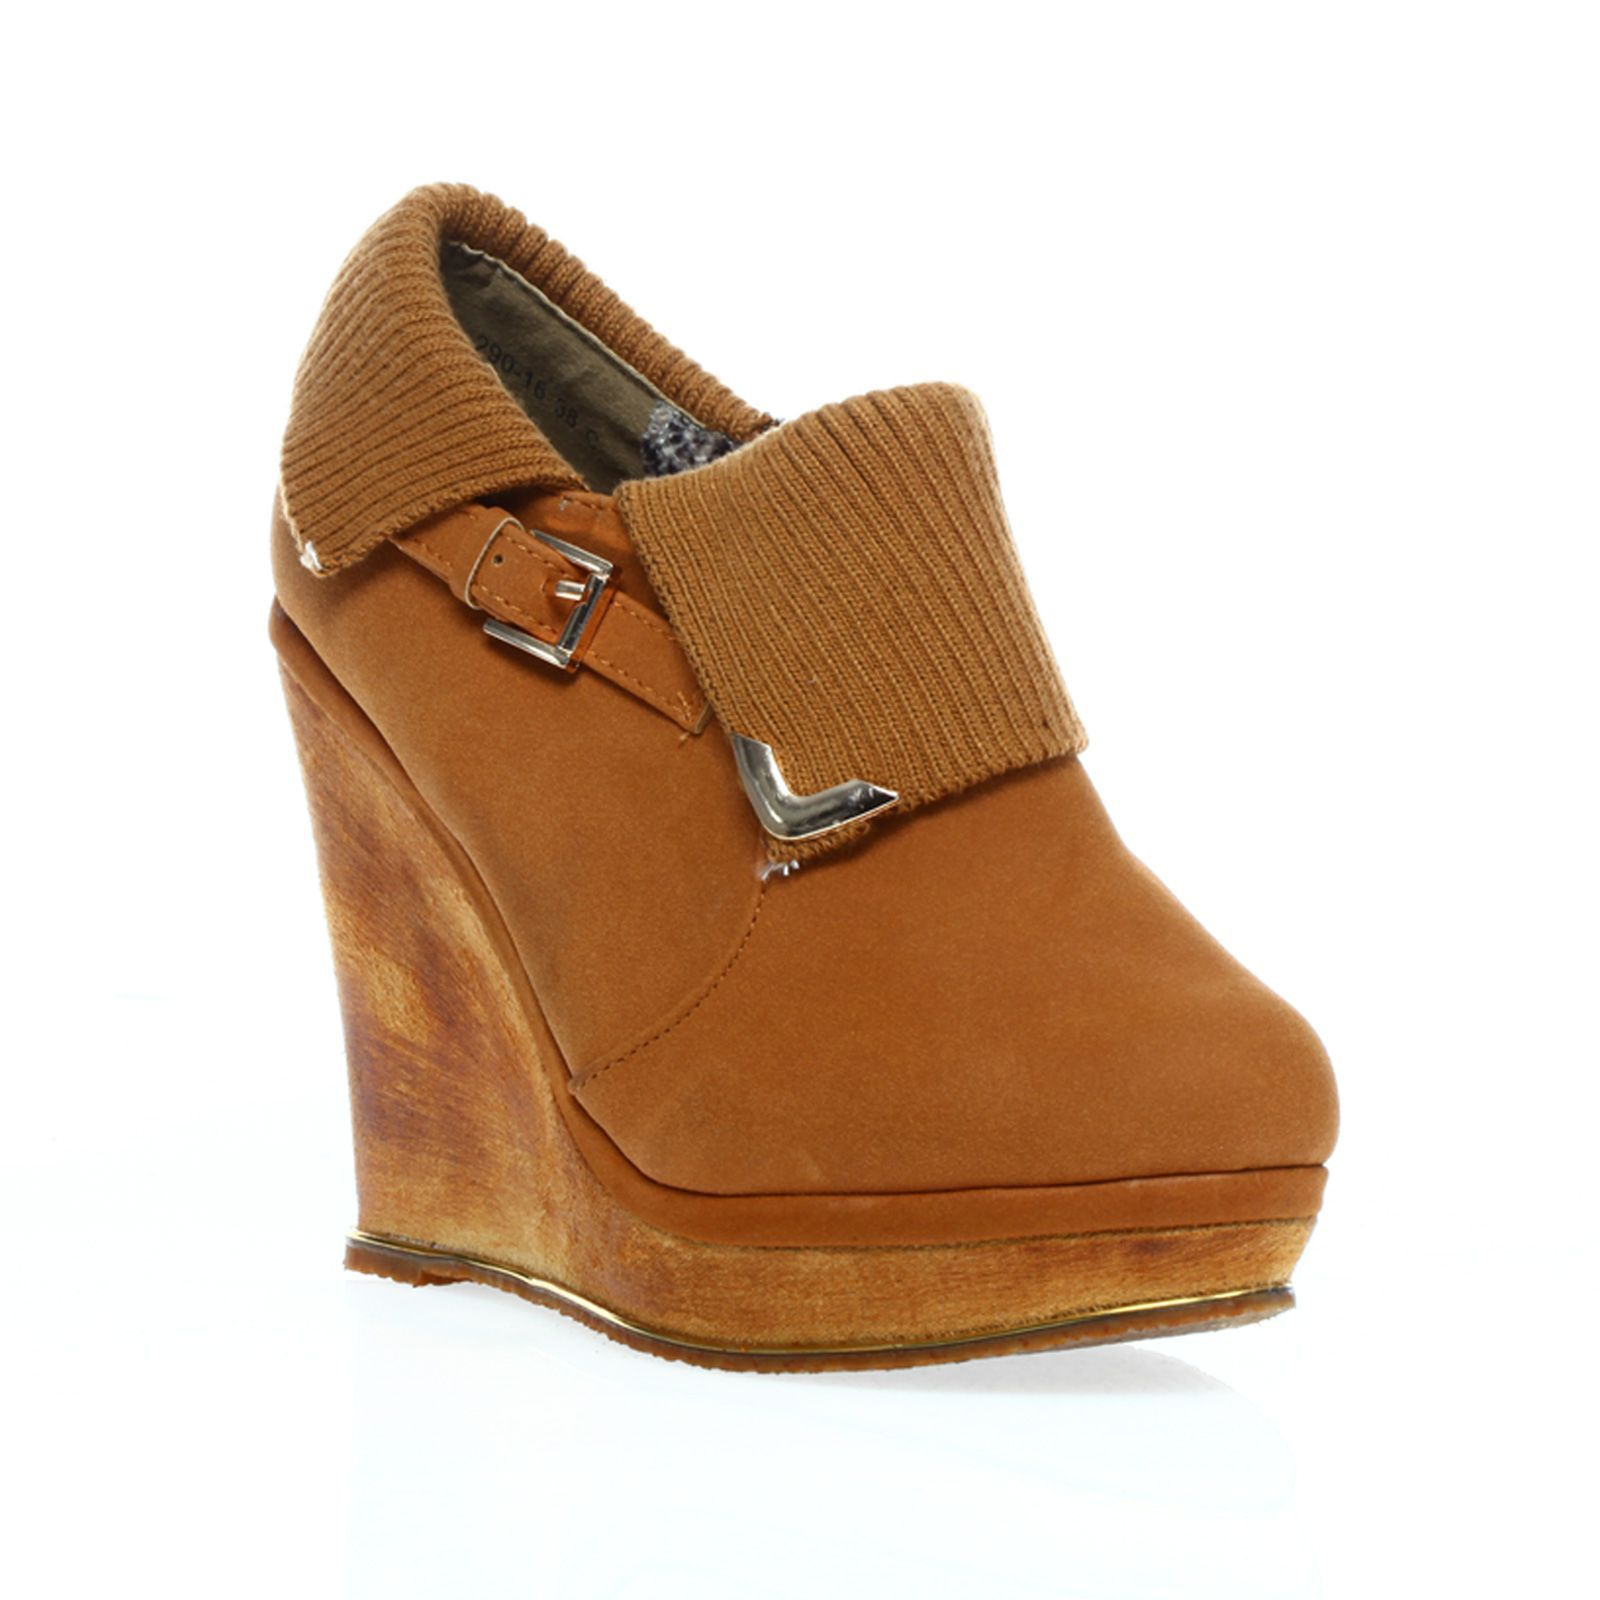 1001 Shoes compens�es - camel